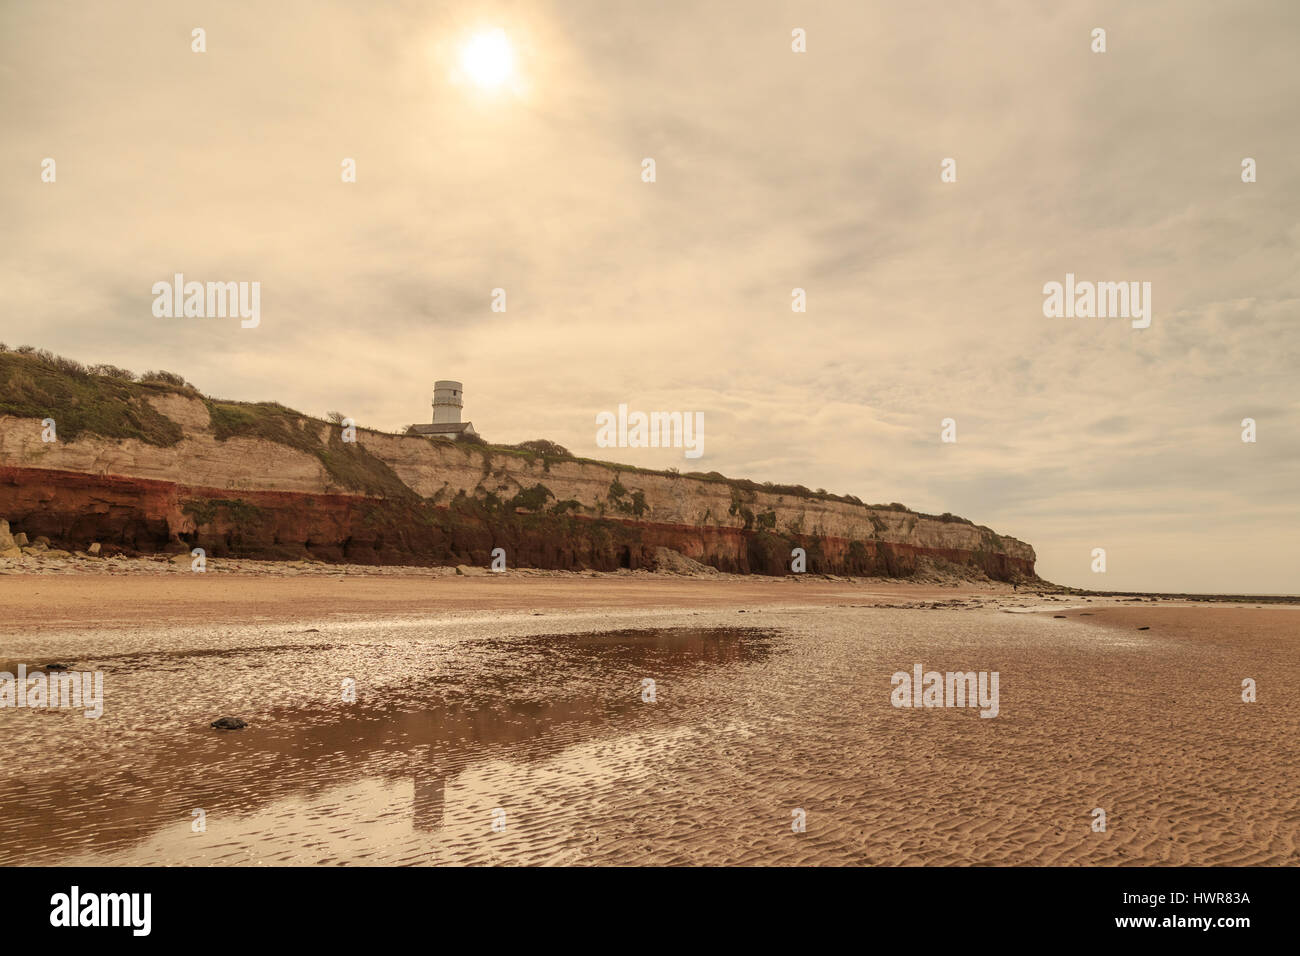 HUNSTANTON, ENGLAND - MARCH 10: Old Hunstanton Lighthouse (now a residence) reflected in rock pool on beach. HDR - Stock Image